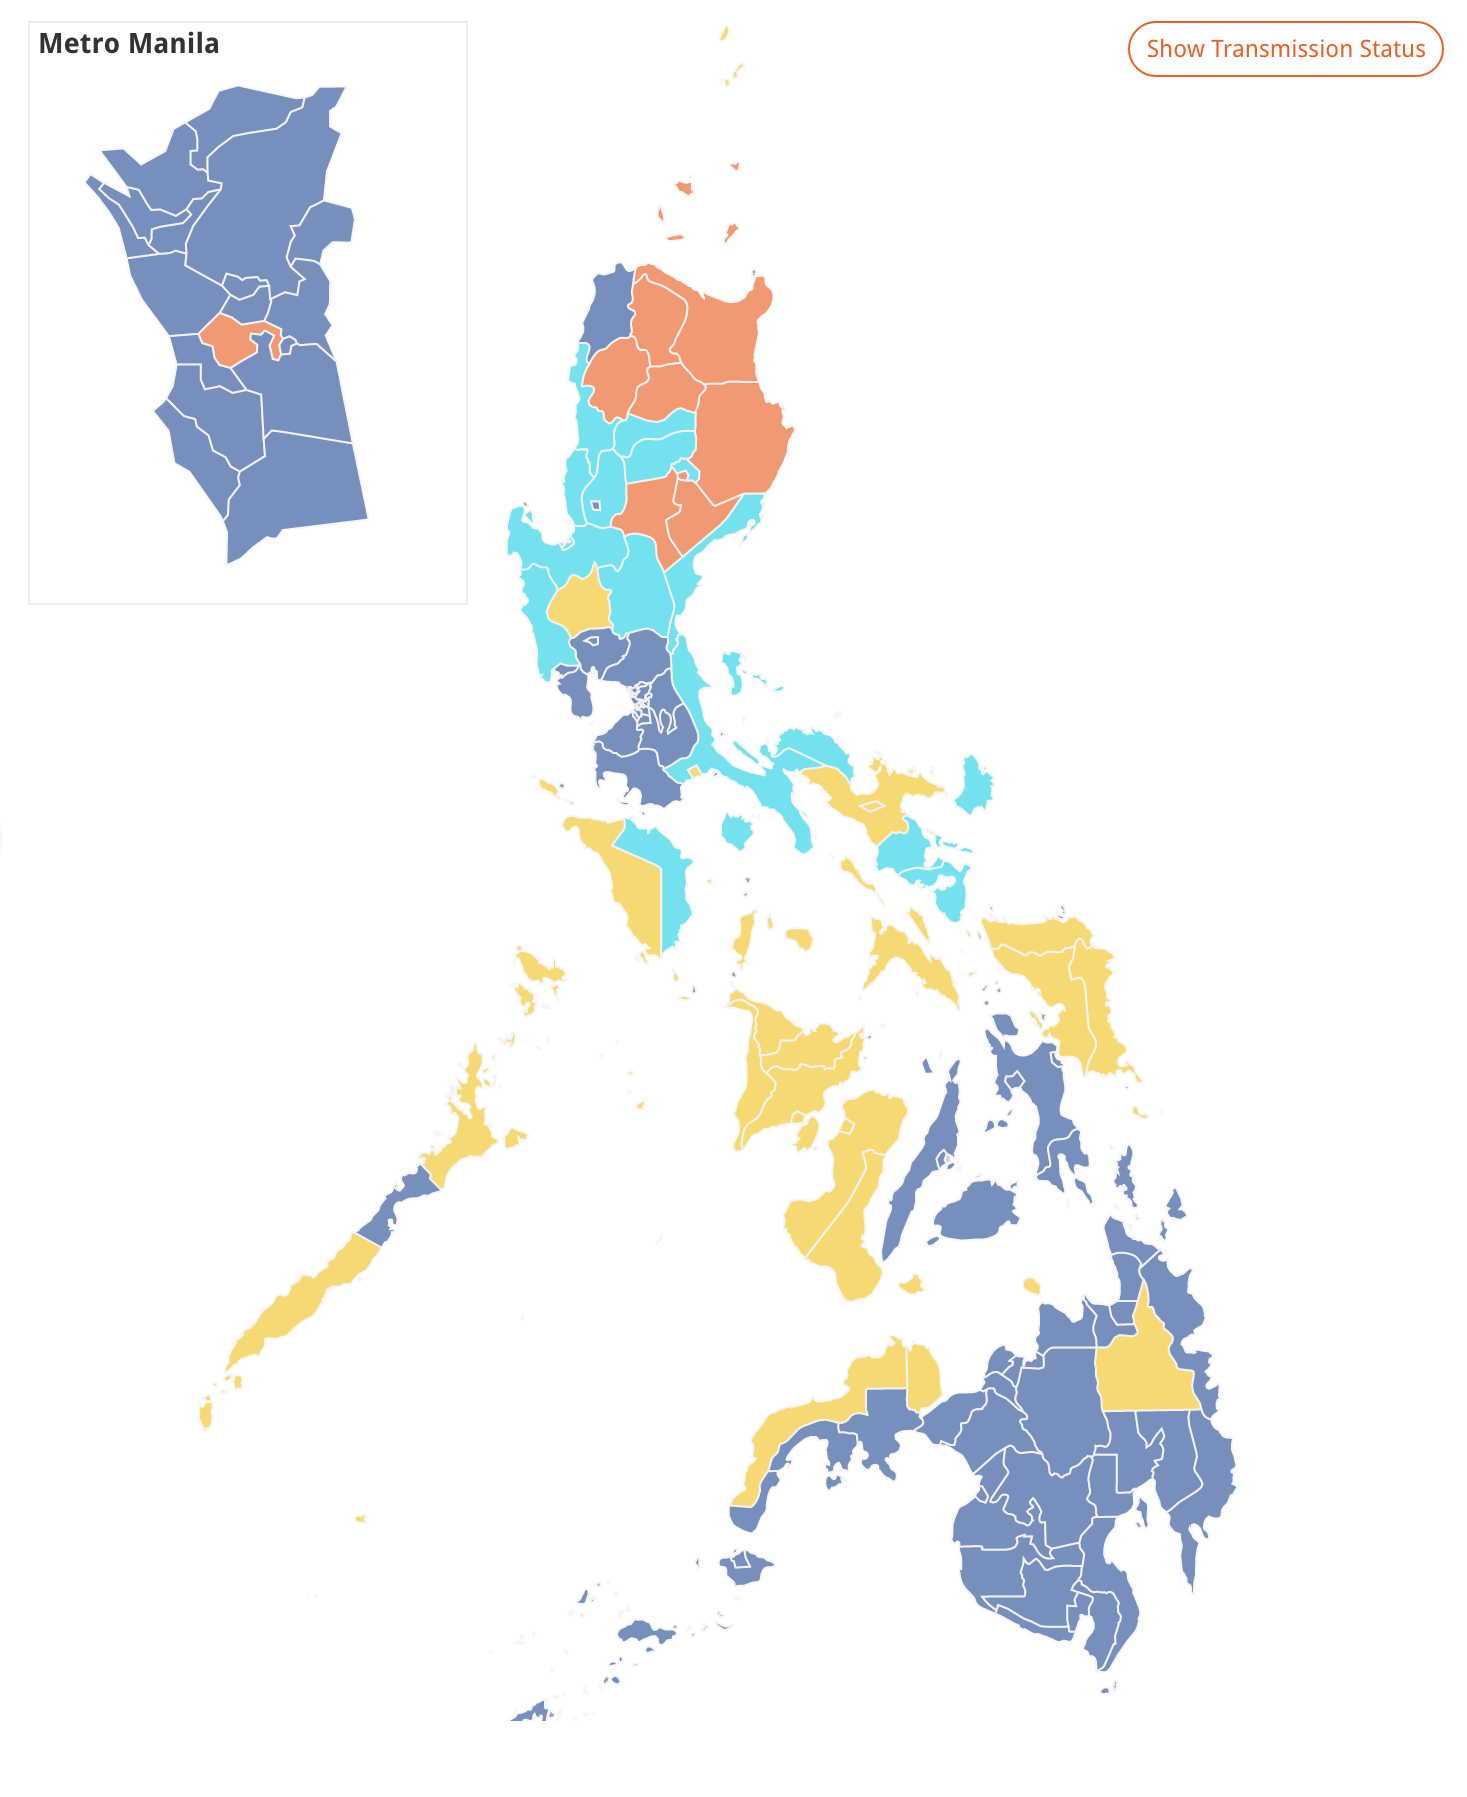 In This Geographic Map The Color Represents The Candidate Who Received The Most Number Of Votes In The Province Or City The Problem Is That The Geographic